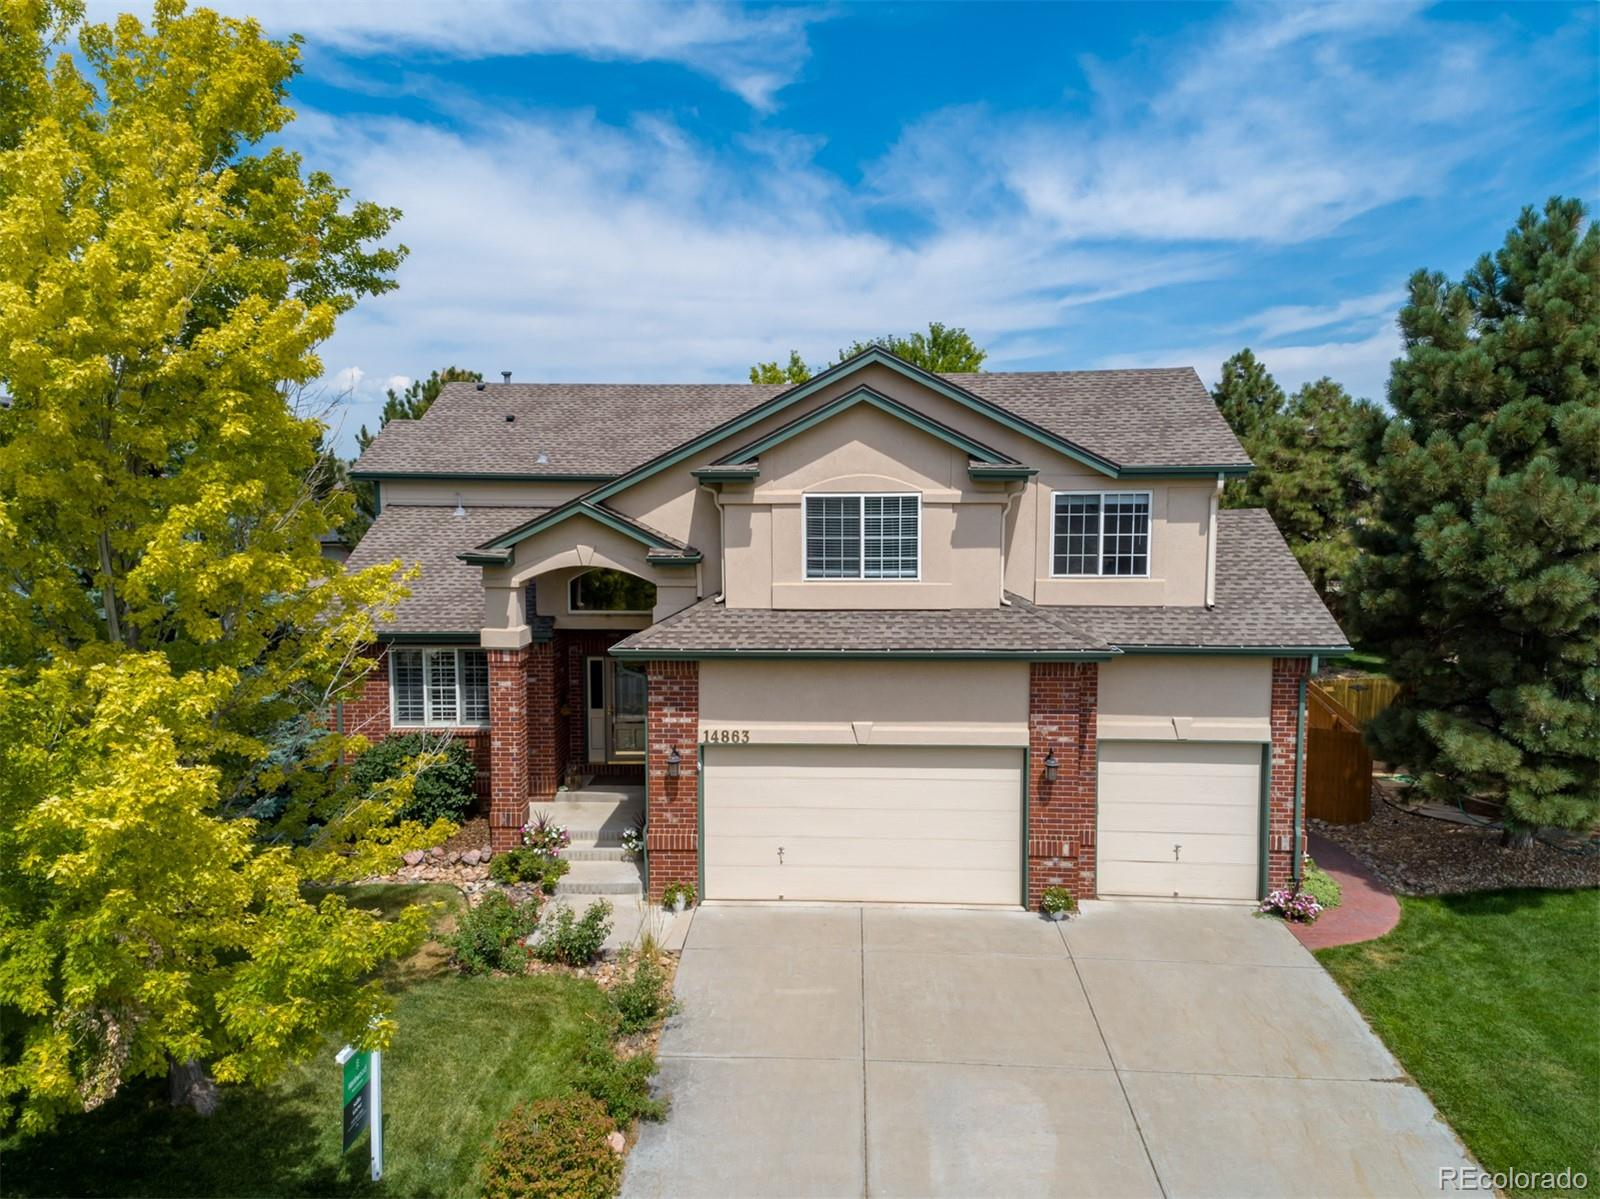 14863 E Lake Place Property Photo - Centennial, CO real estate listing